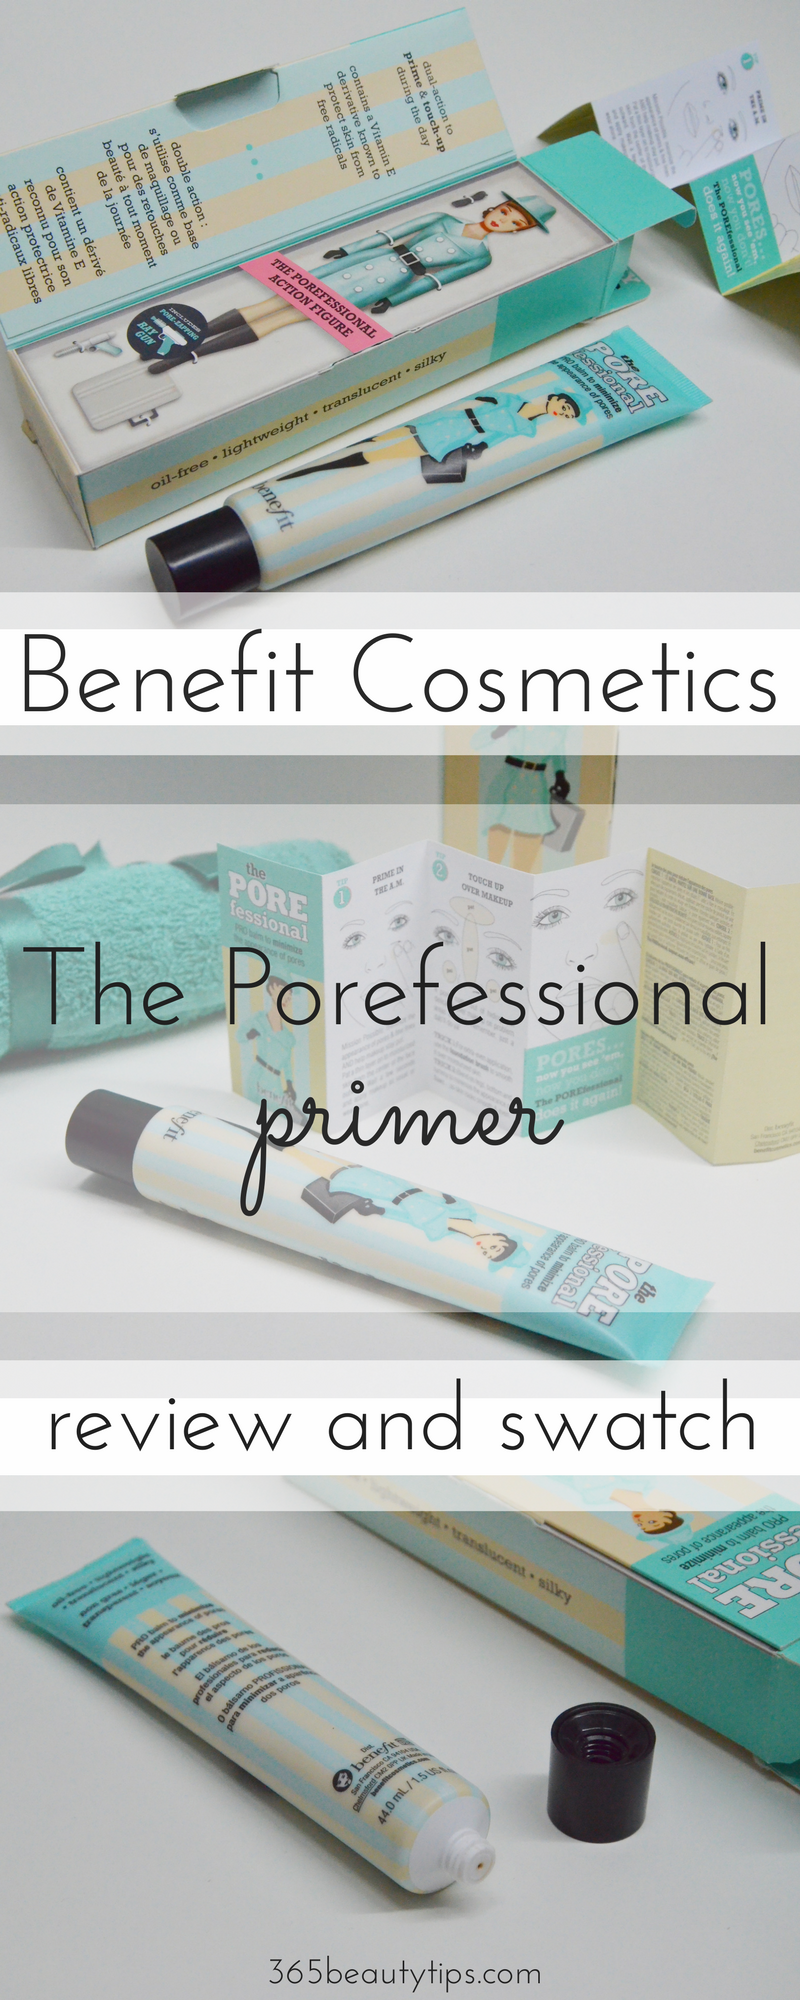 Benefit Cosmetics-the-porefessional-primer-review-and-swatch